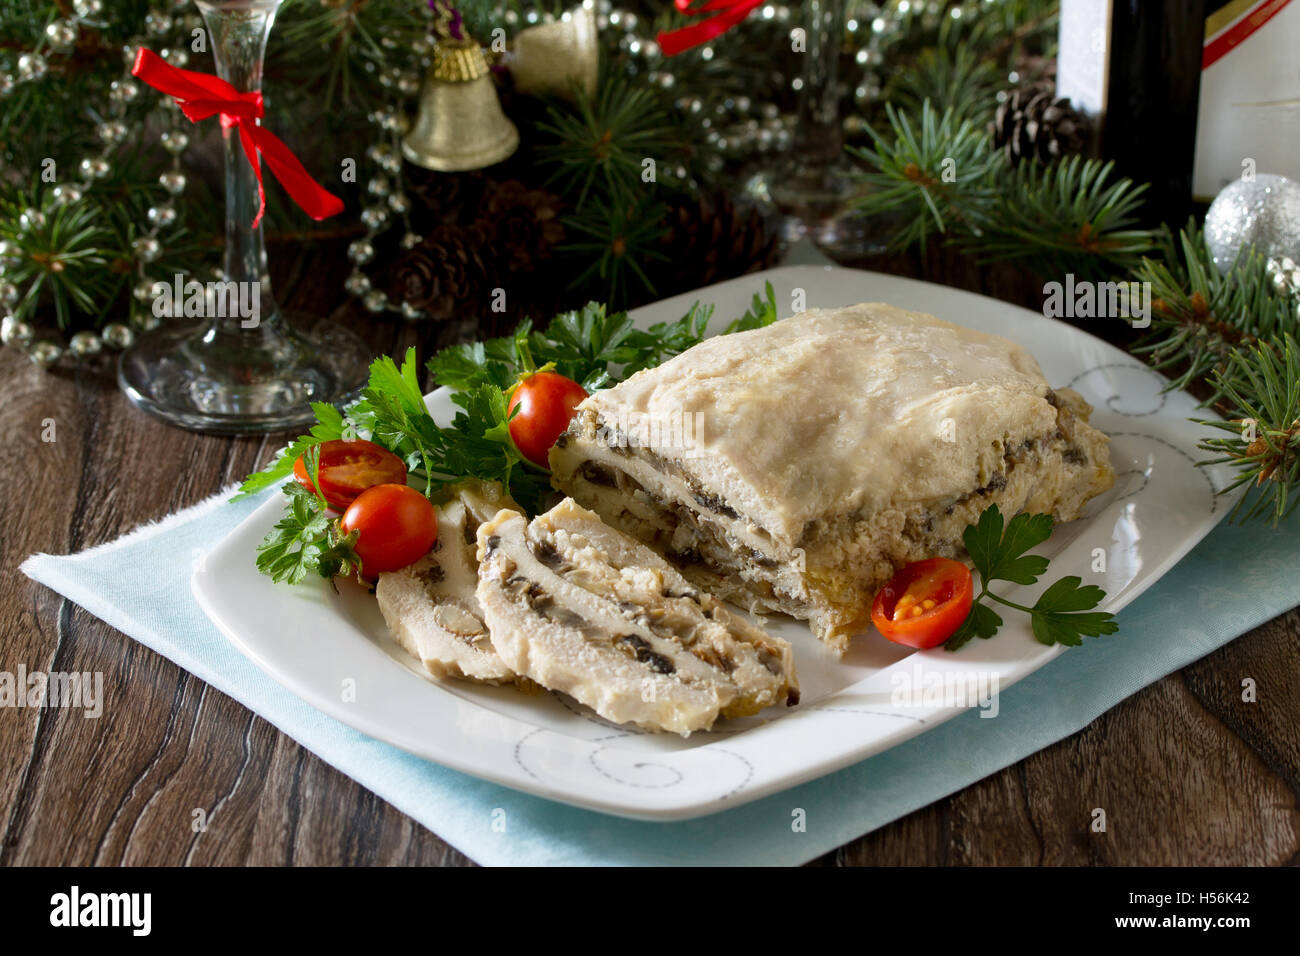 Homemade meatloaf with mushrooms and onions on a festive Christmas table. - Stock Image